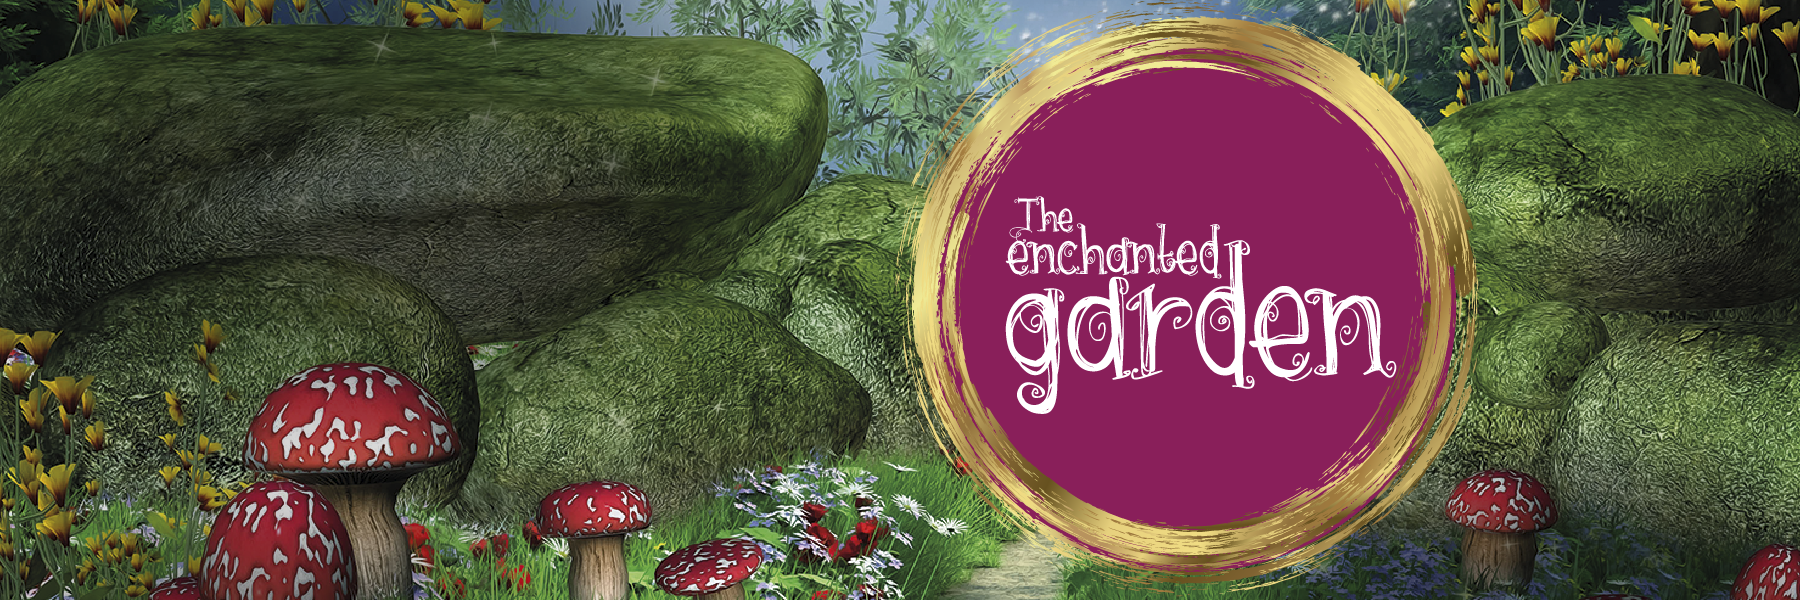 Enchanted Garden Selfie Competition